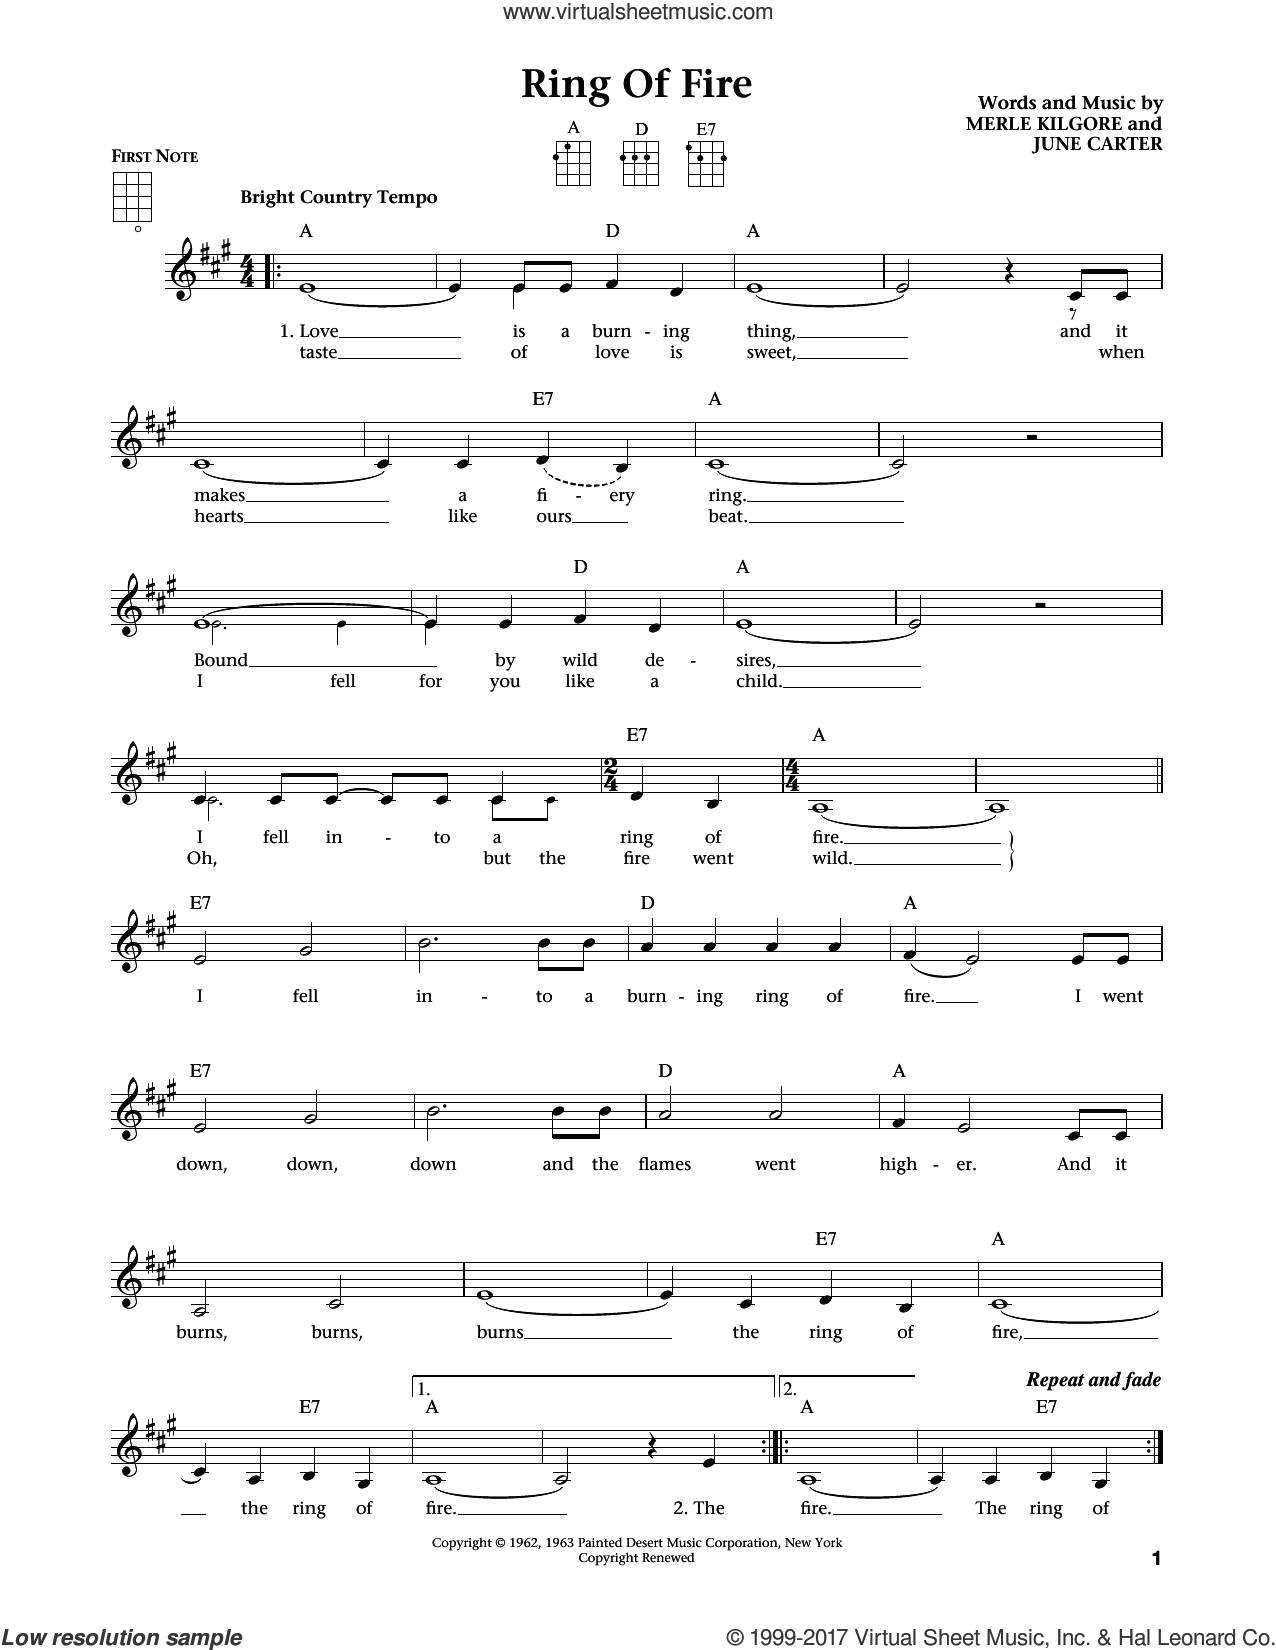 Ring Of Fire (from The Daily Ukulele) (arr. Liz and Jim Beloff) sheet music for ukulele by Johnny Cash, Jim Beloff, Liz Beloff, June Carter and Merle Kilgore, intermediate skill level